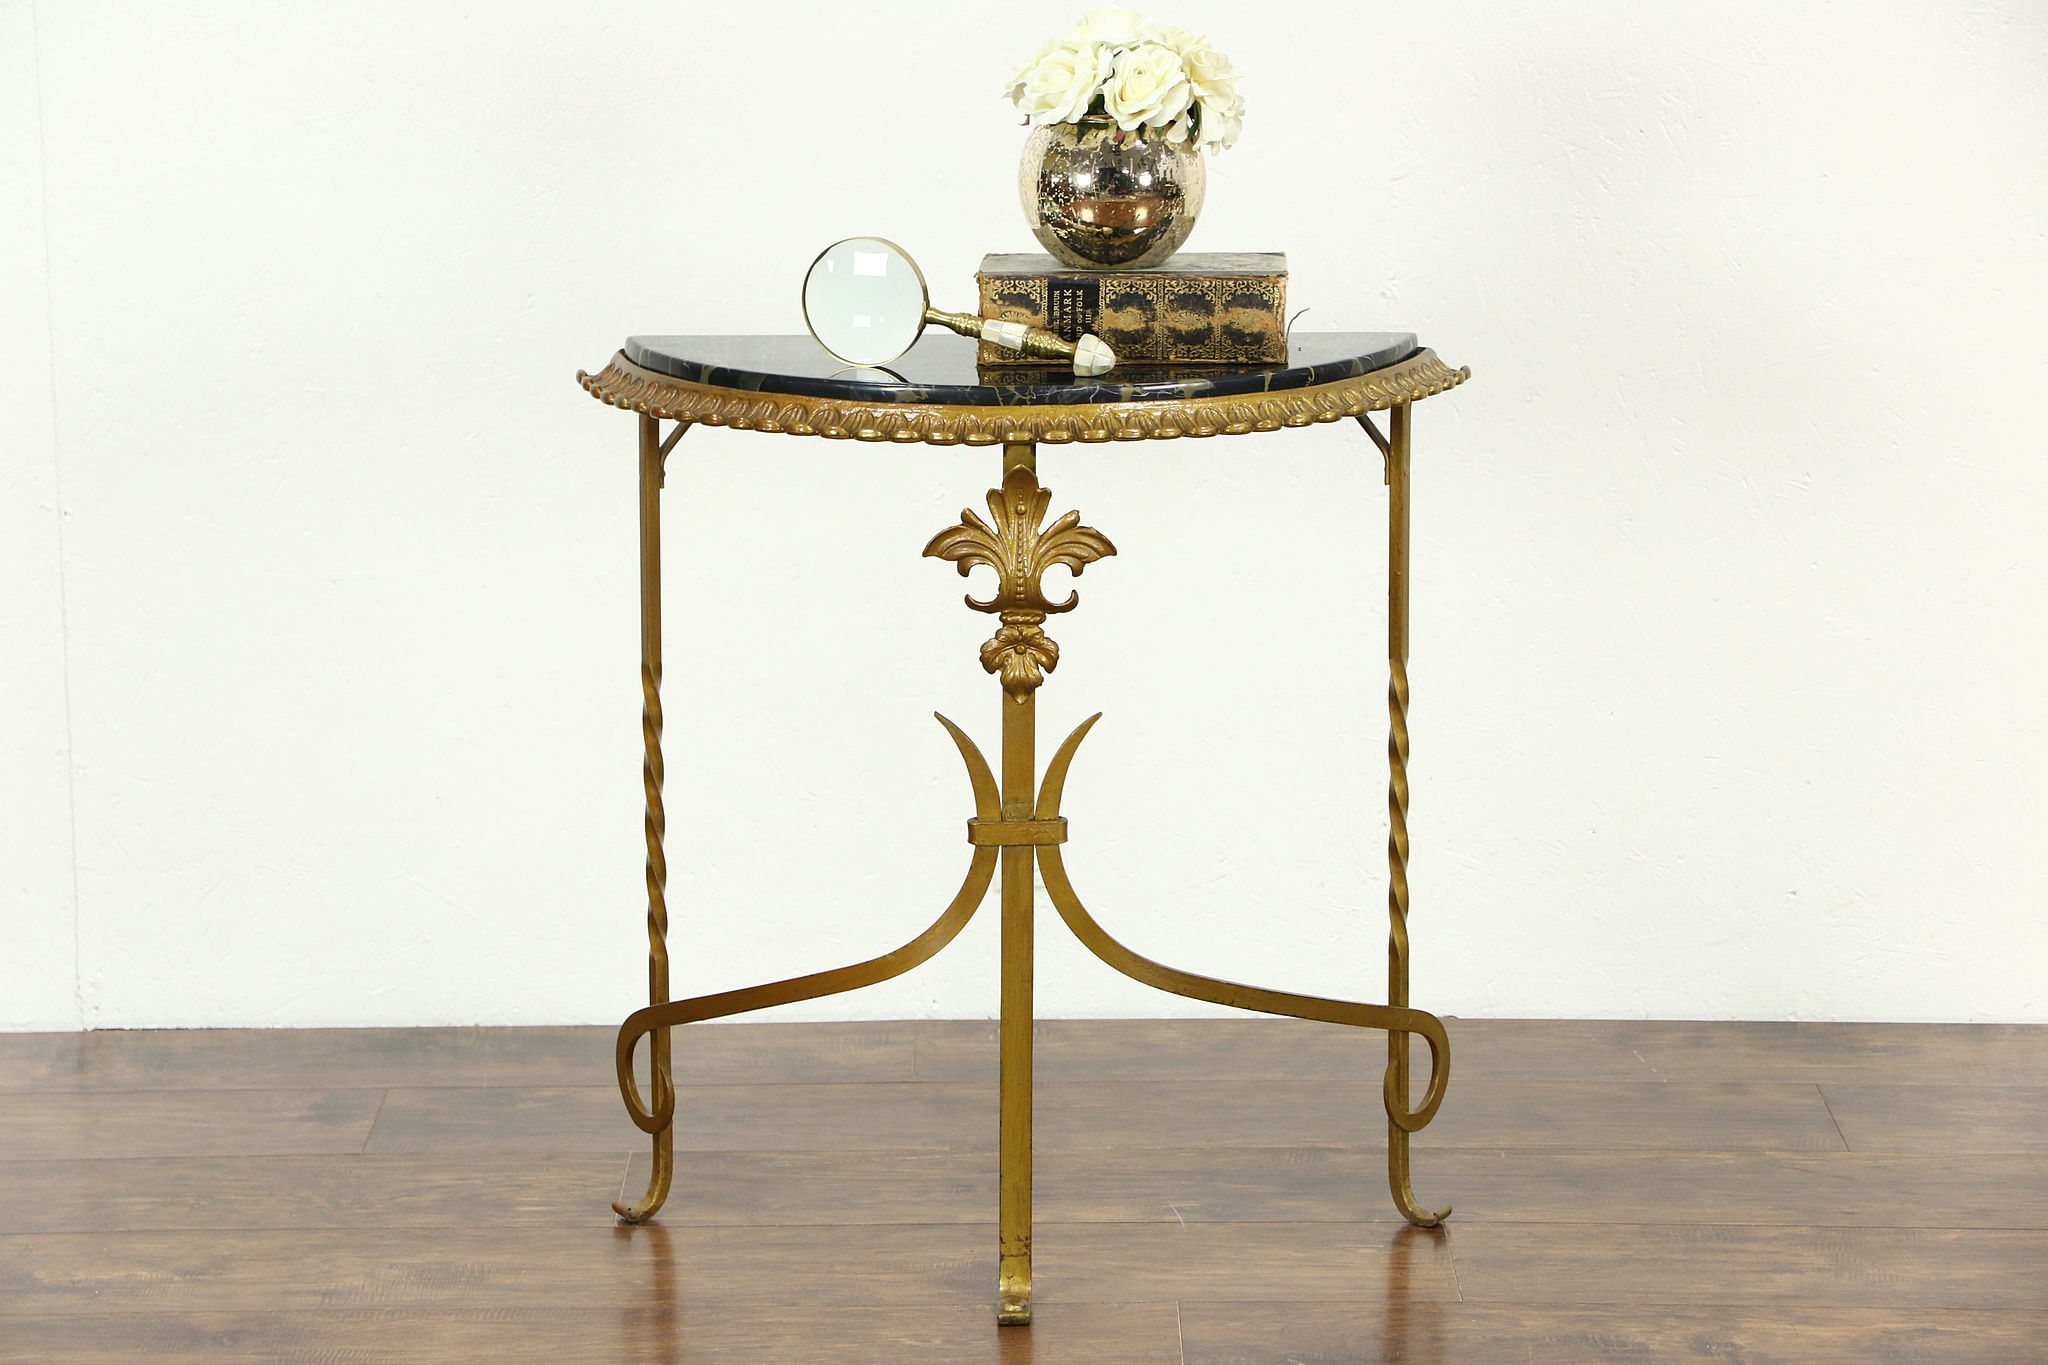 Sold black marble and gilt wrought iron 1920 antique demilune black marble and gilt wrought iron 1920 antique demilune console table geotapseo Gallery